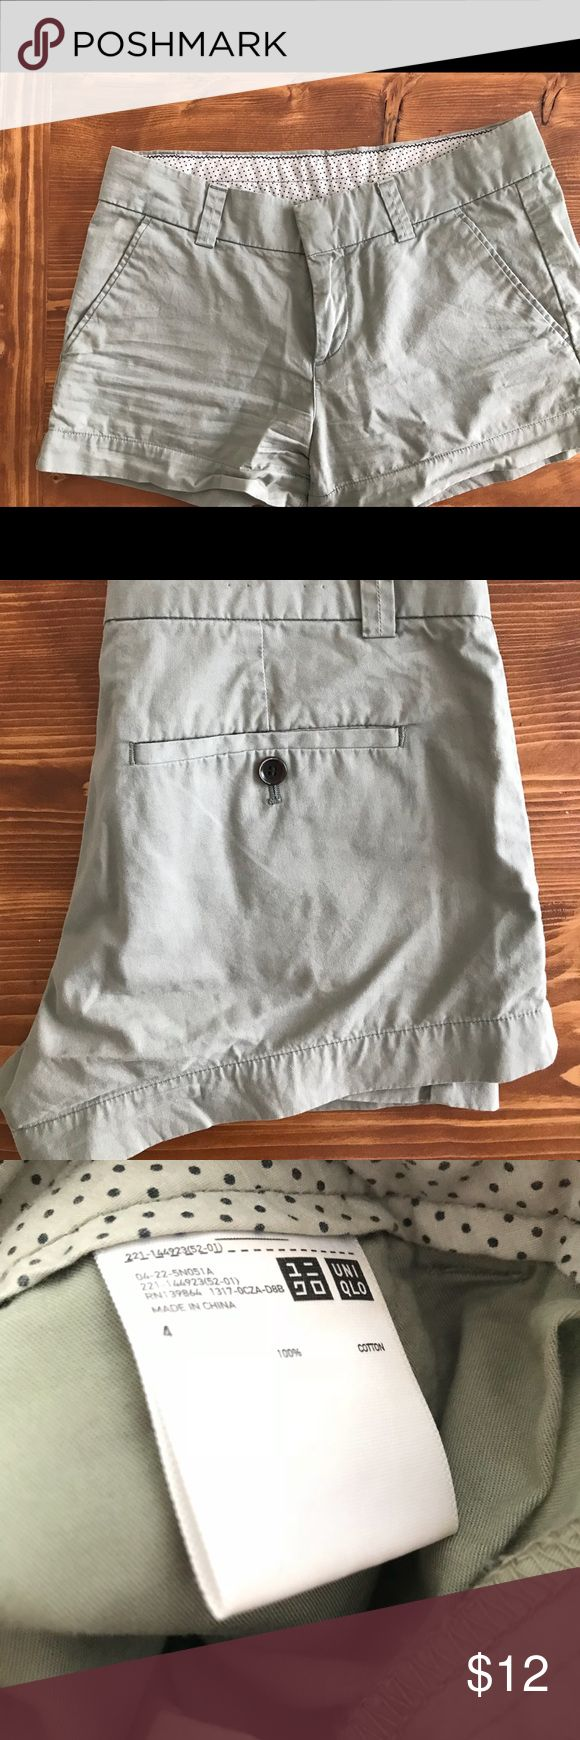 Uniqlo Cotton Shorts- Flat Green 🌿💕 Uniqlo Shorts- Flat Green, Size 4, barely worn, very comfortable! 💕🌿 Mossimo Supply Co Shorts